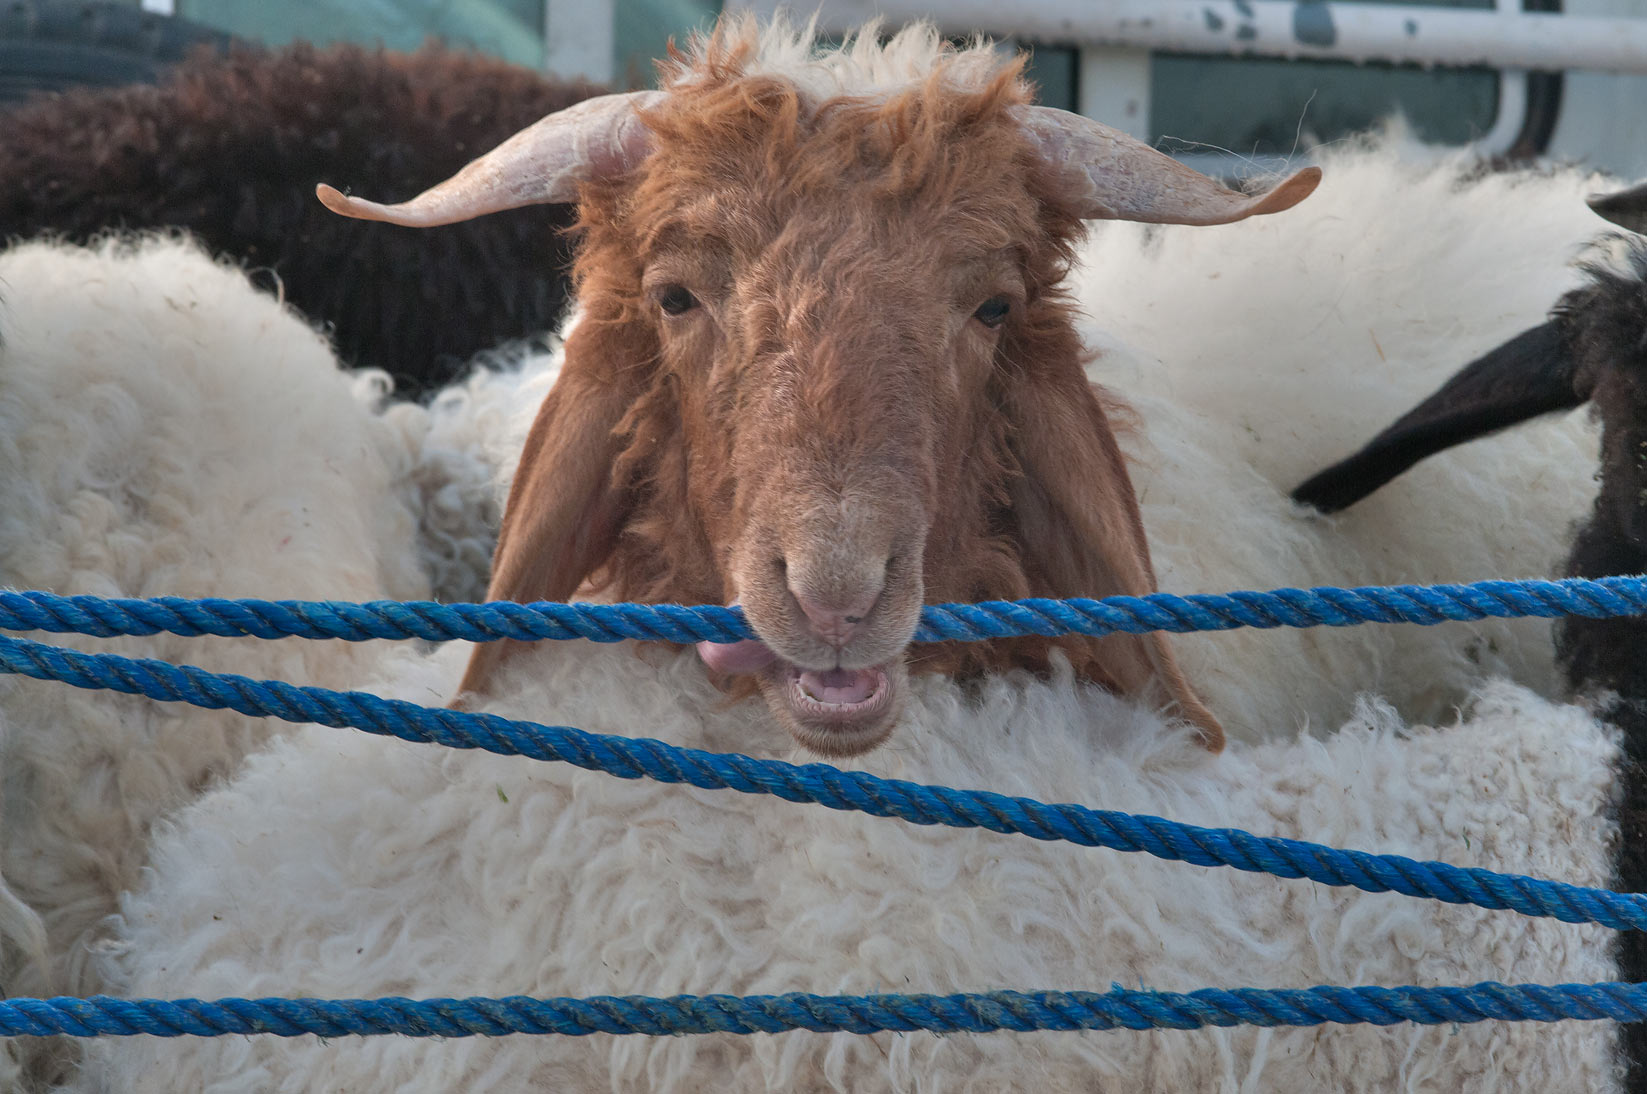 Ram gnawing a rope in Sheep Market, Wholesale Market area. Doha, Qatar